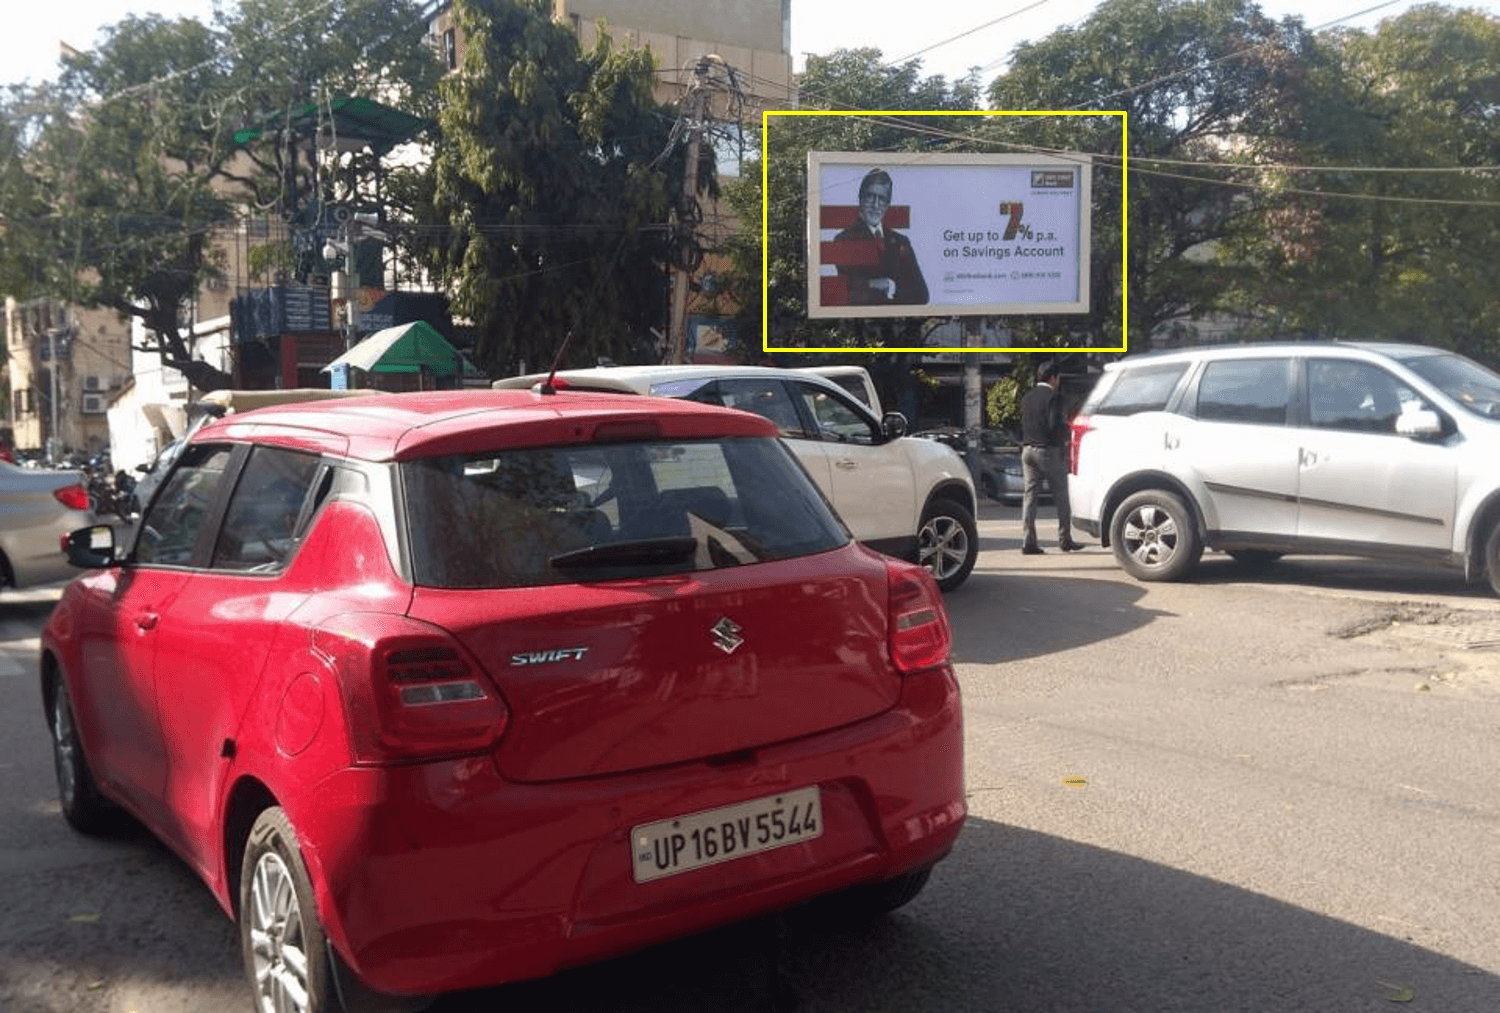 Outdoor Unipole Advertising at Green Park Market (OPP. ANANDA BHAWAN RESTAURANT) Delhi